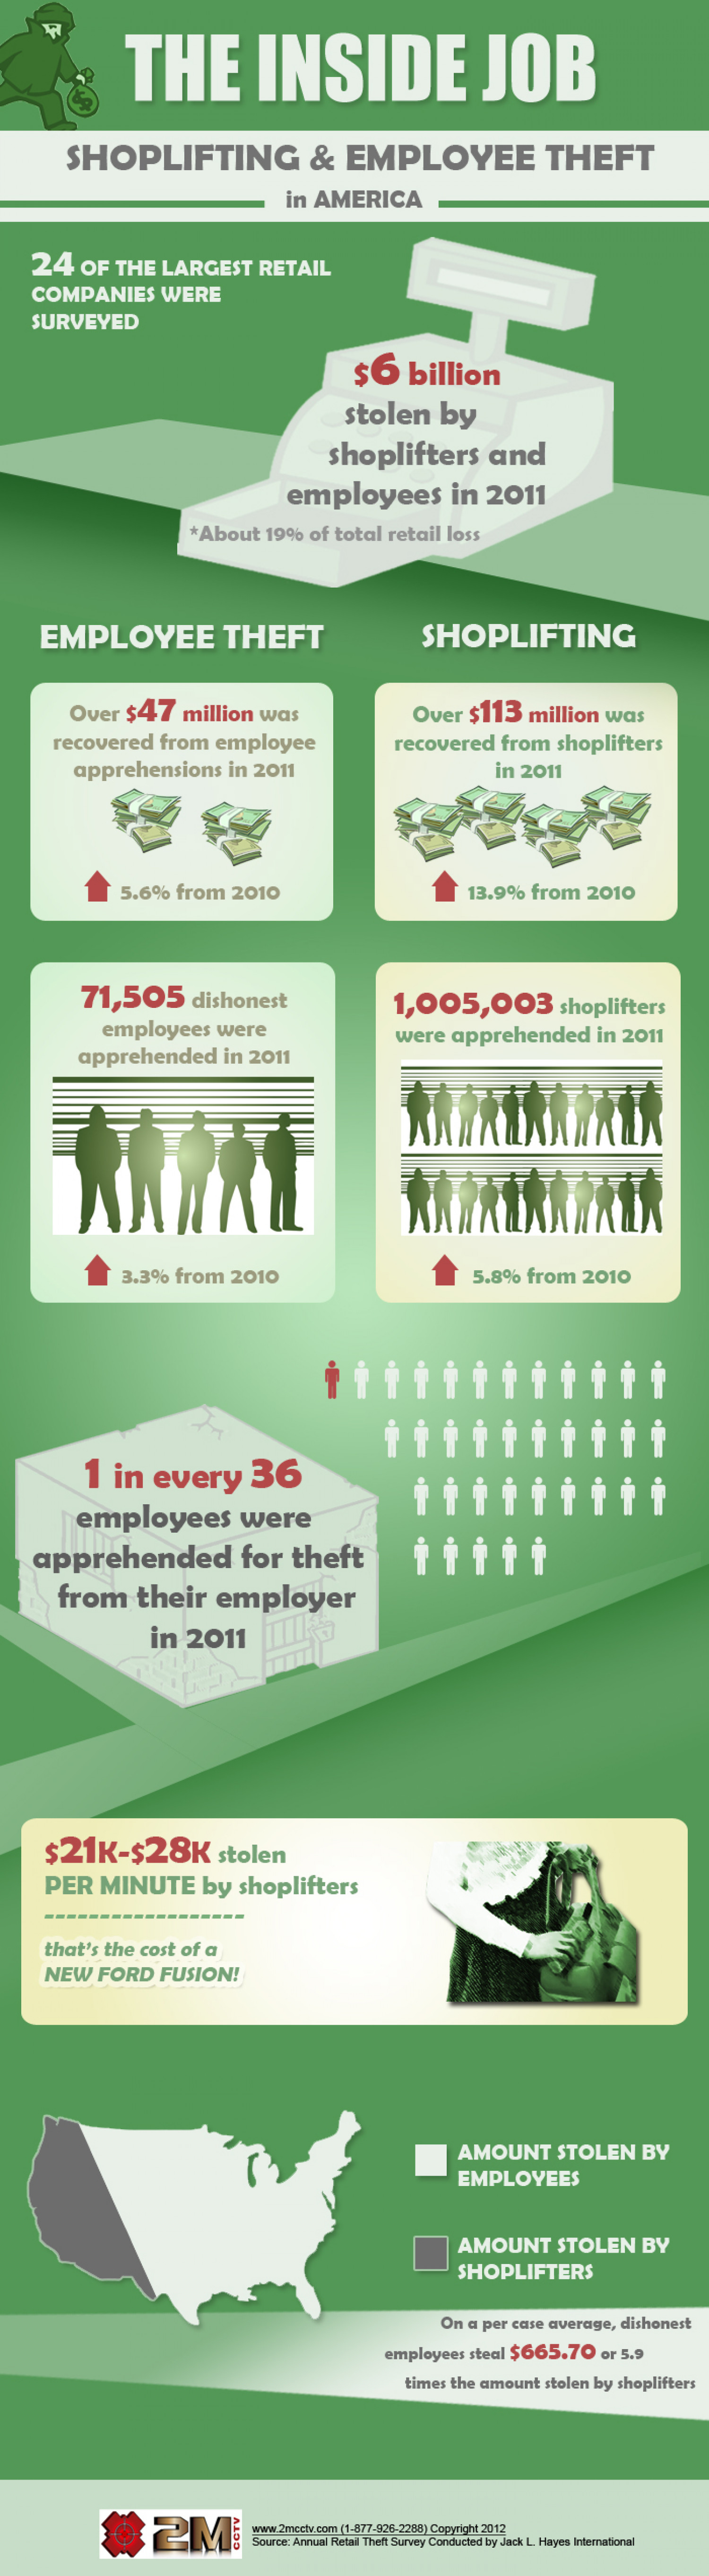 Shoplifting and Employee Theft in America Infographic